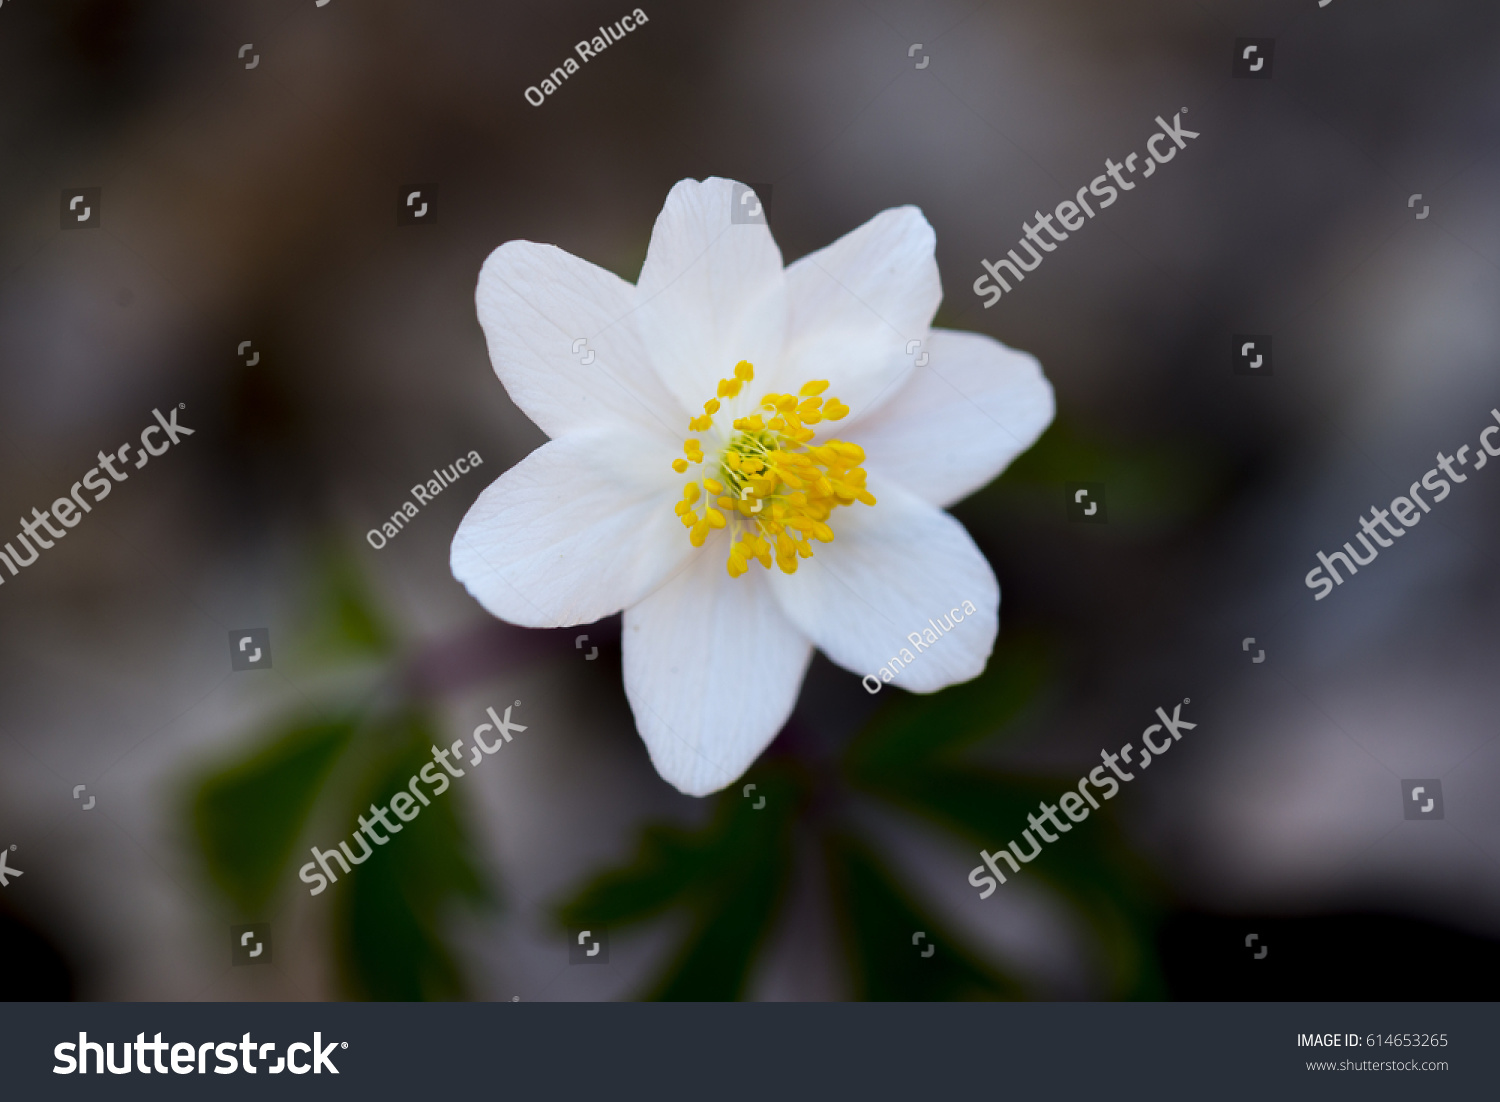 Anemone Nemorosa Is An Early Spring Flowering Plant Native To Europe